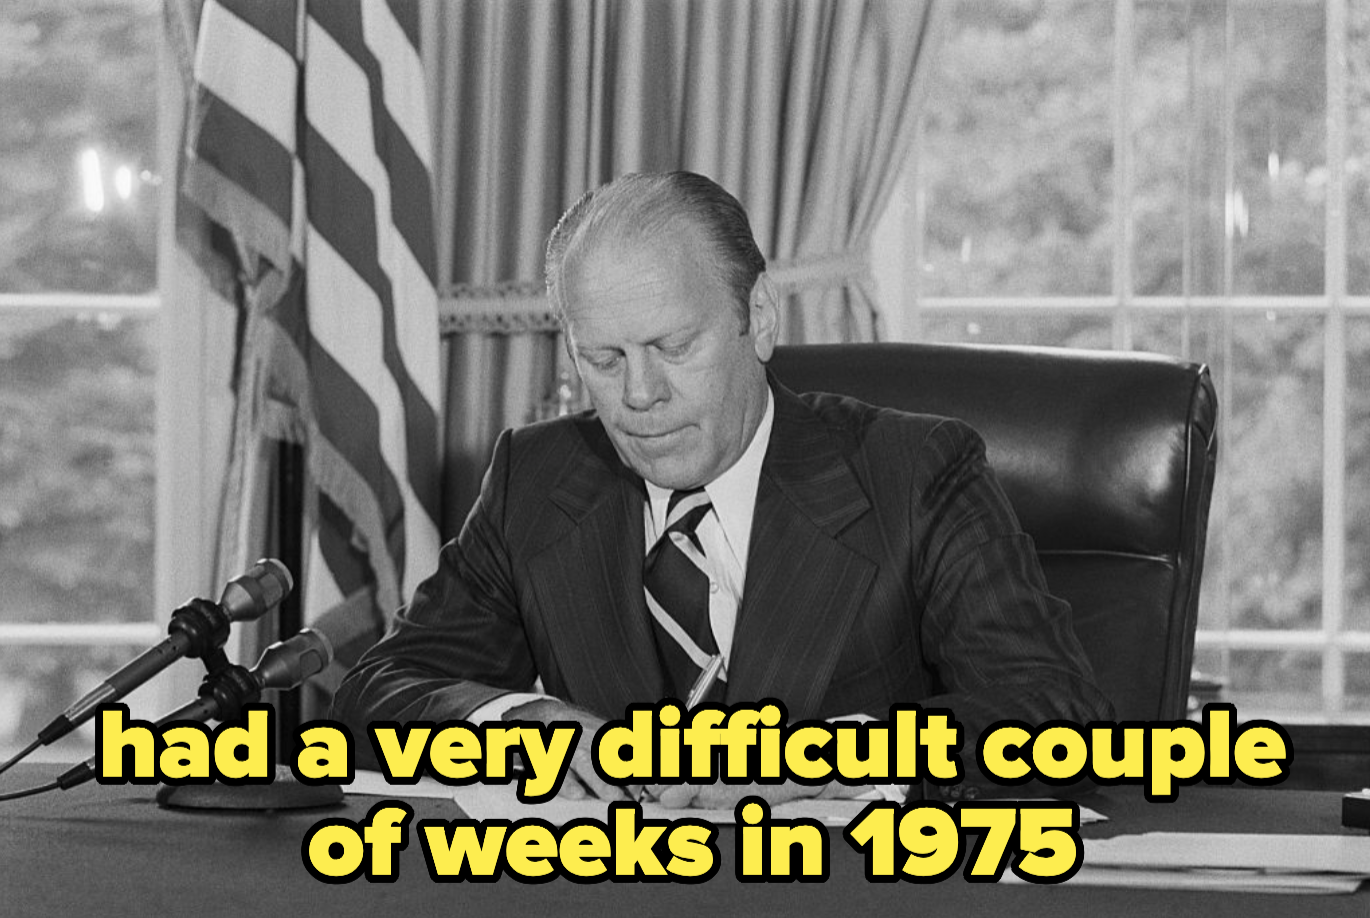 Gerald Ford, who had a very difficult couple of weeks in 1975